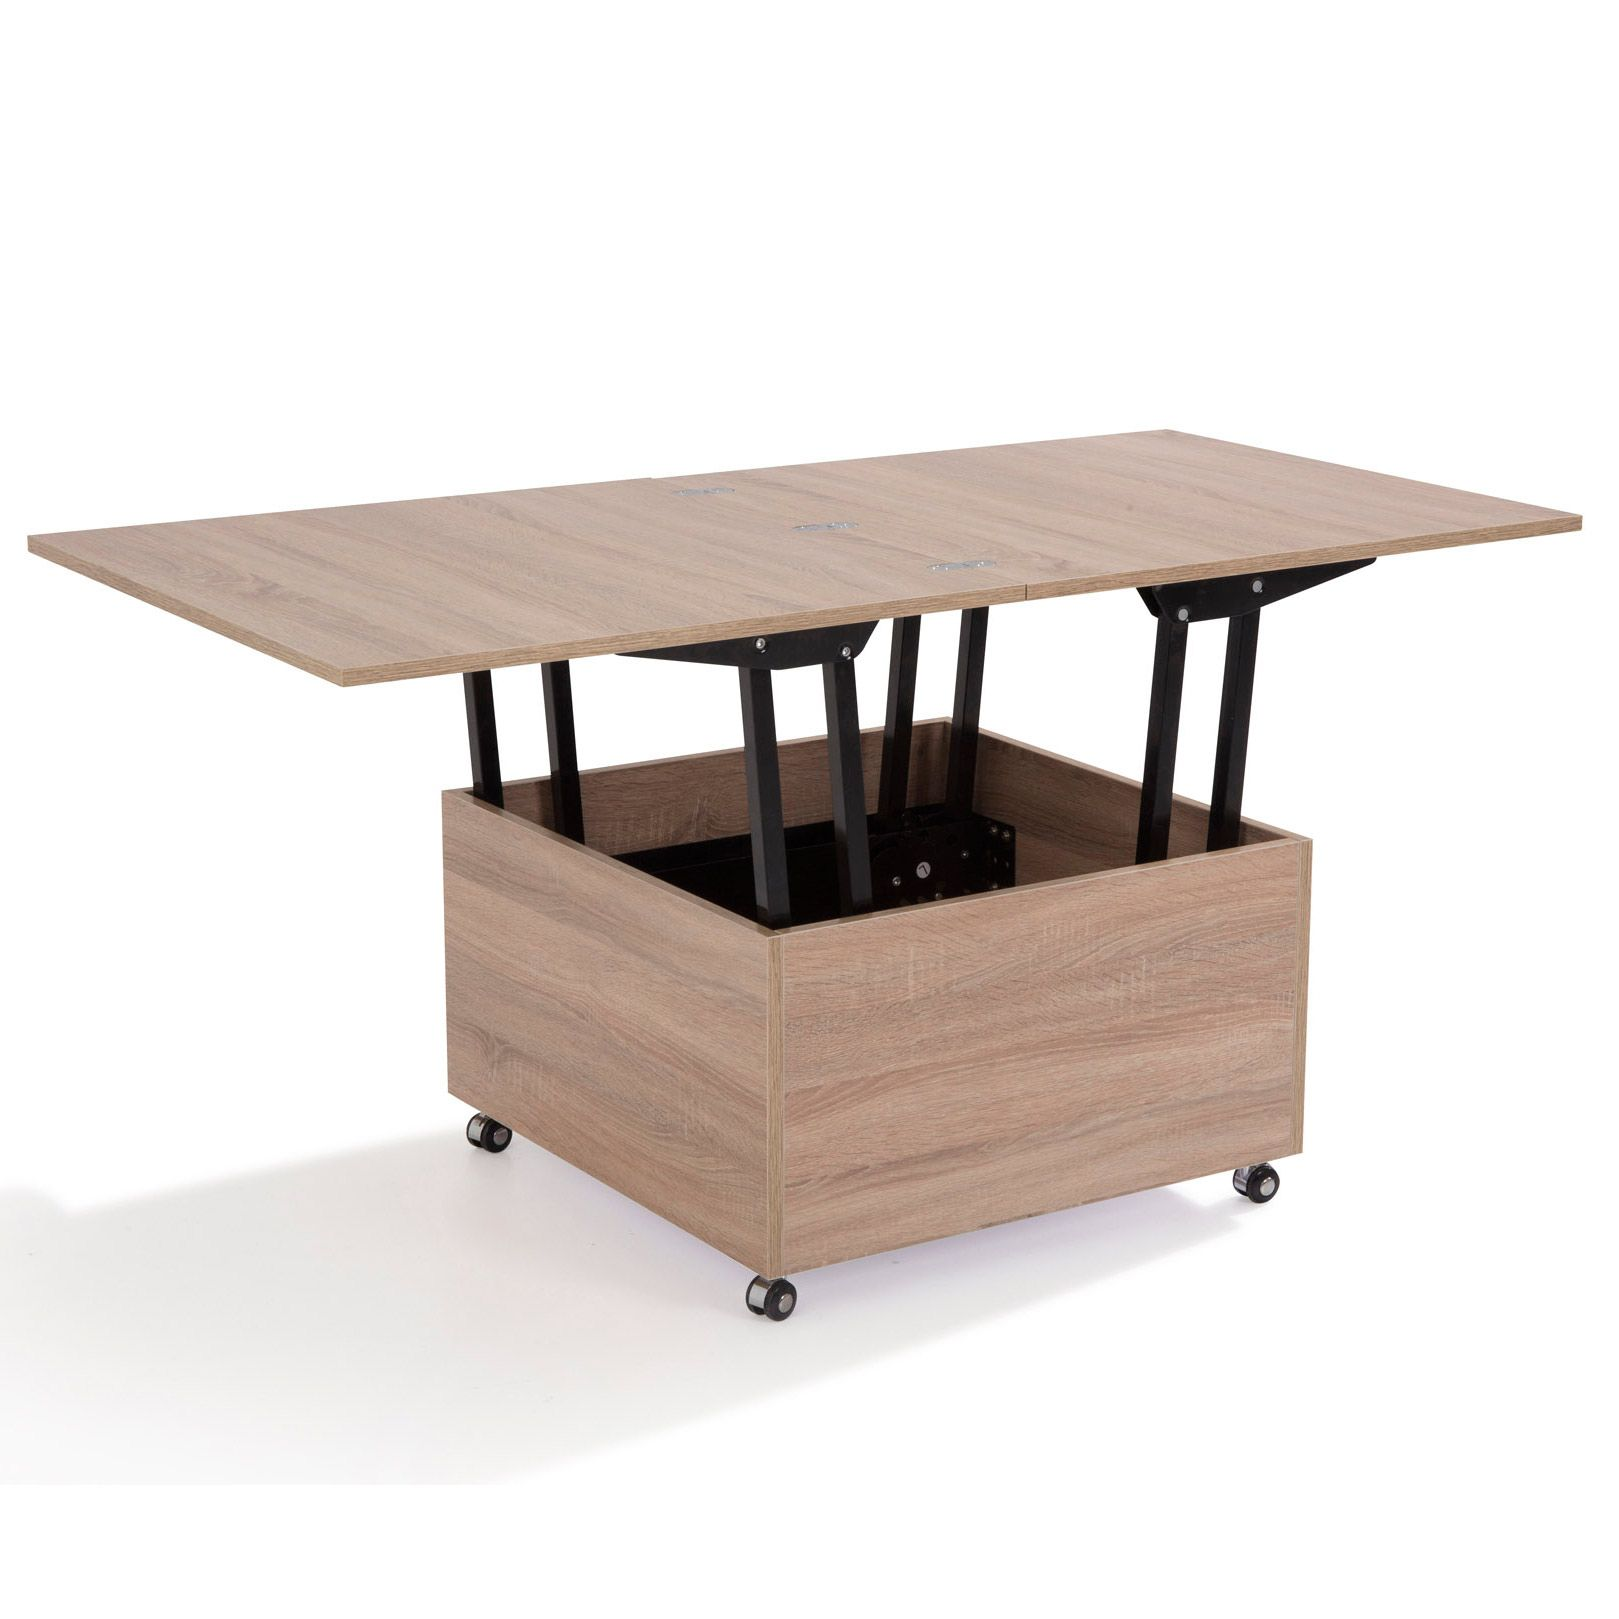 Table basse 80 x 80 relevable carree